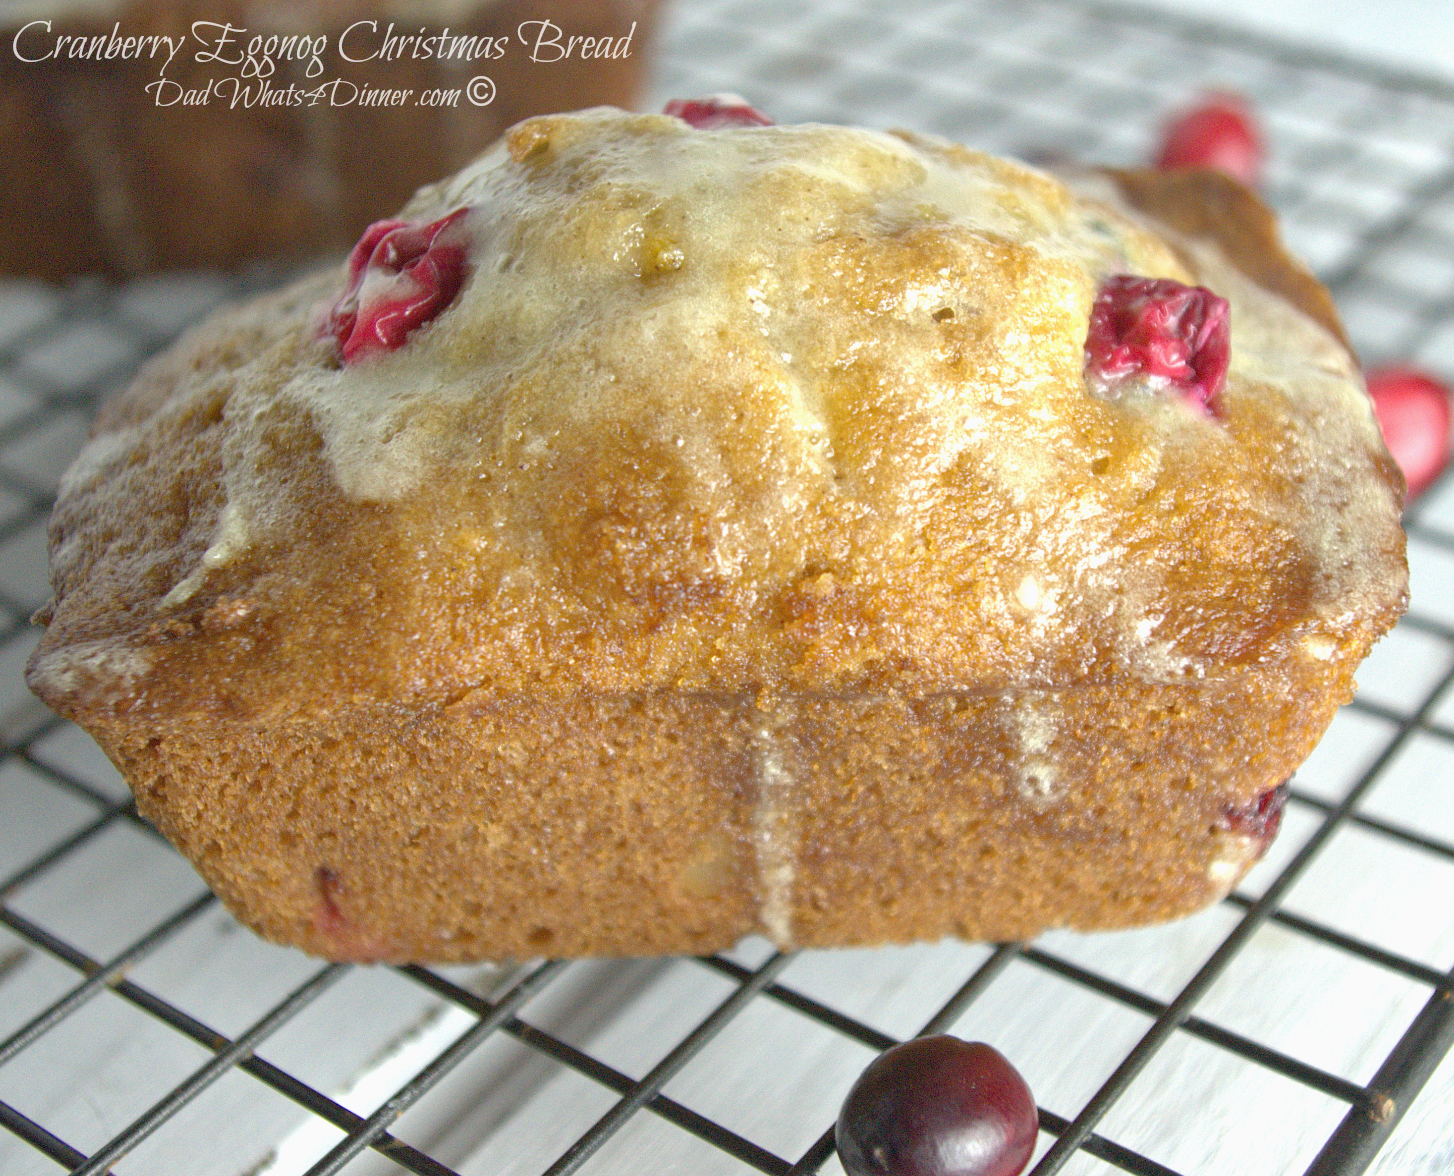 Cranberry Eggnog Christmas Bread Dad Whats 4 Dinner